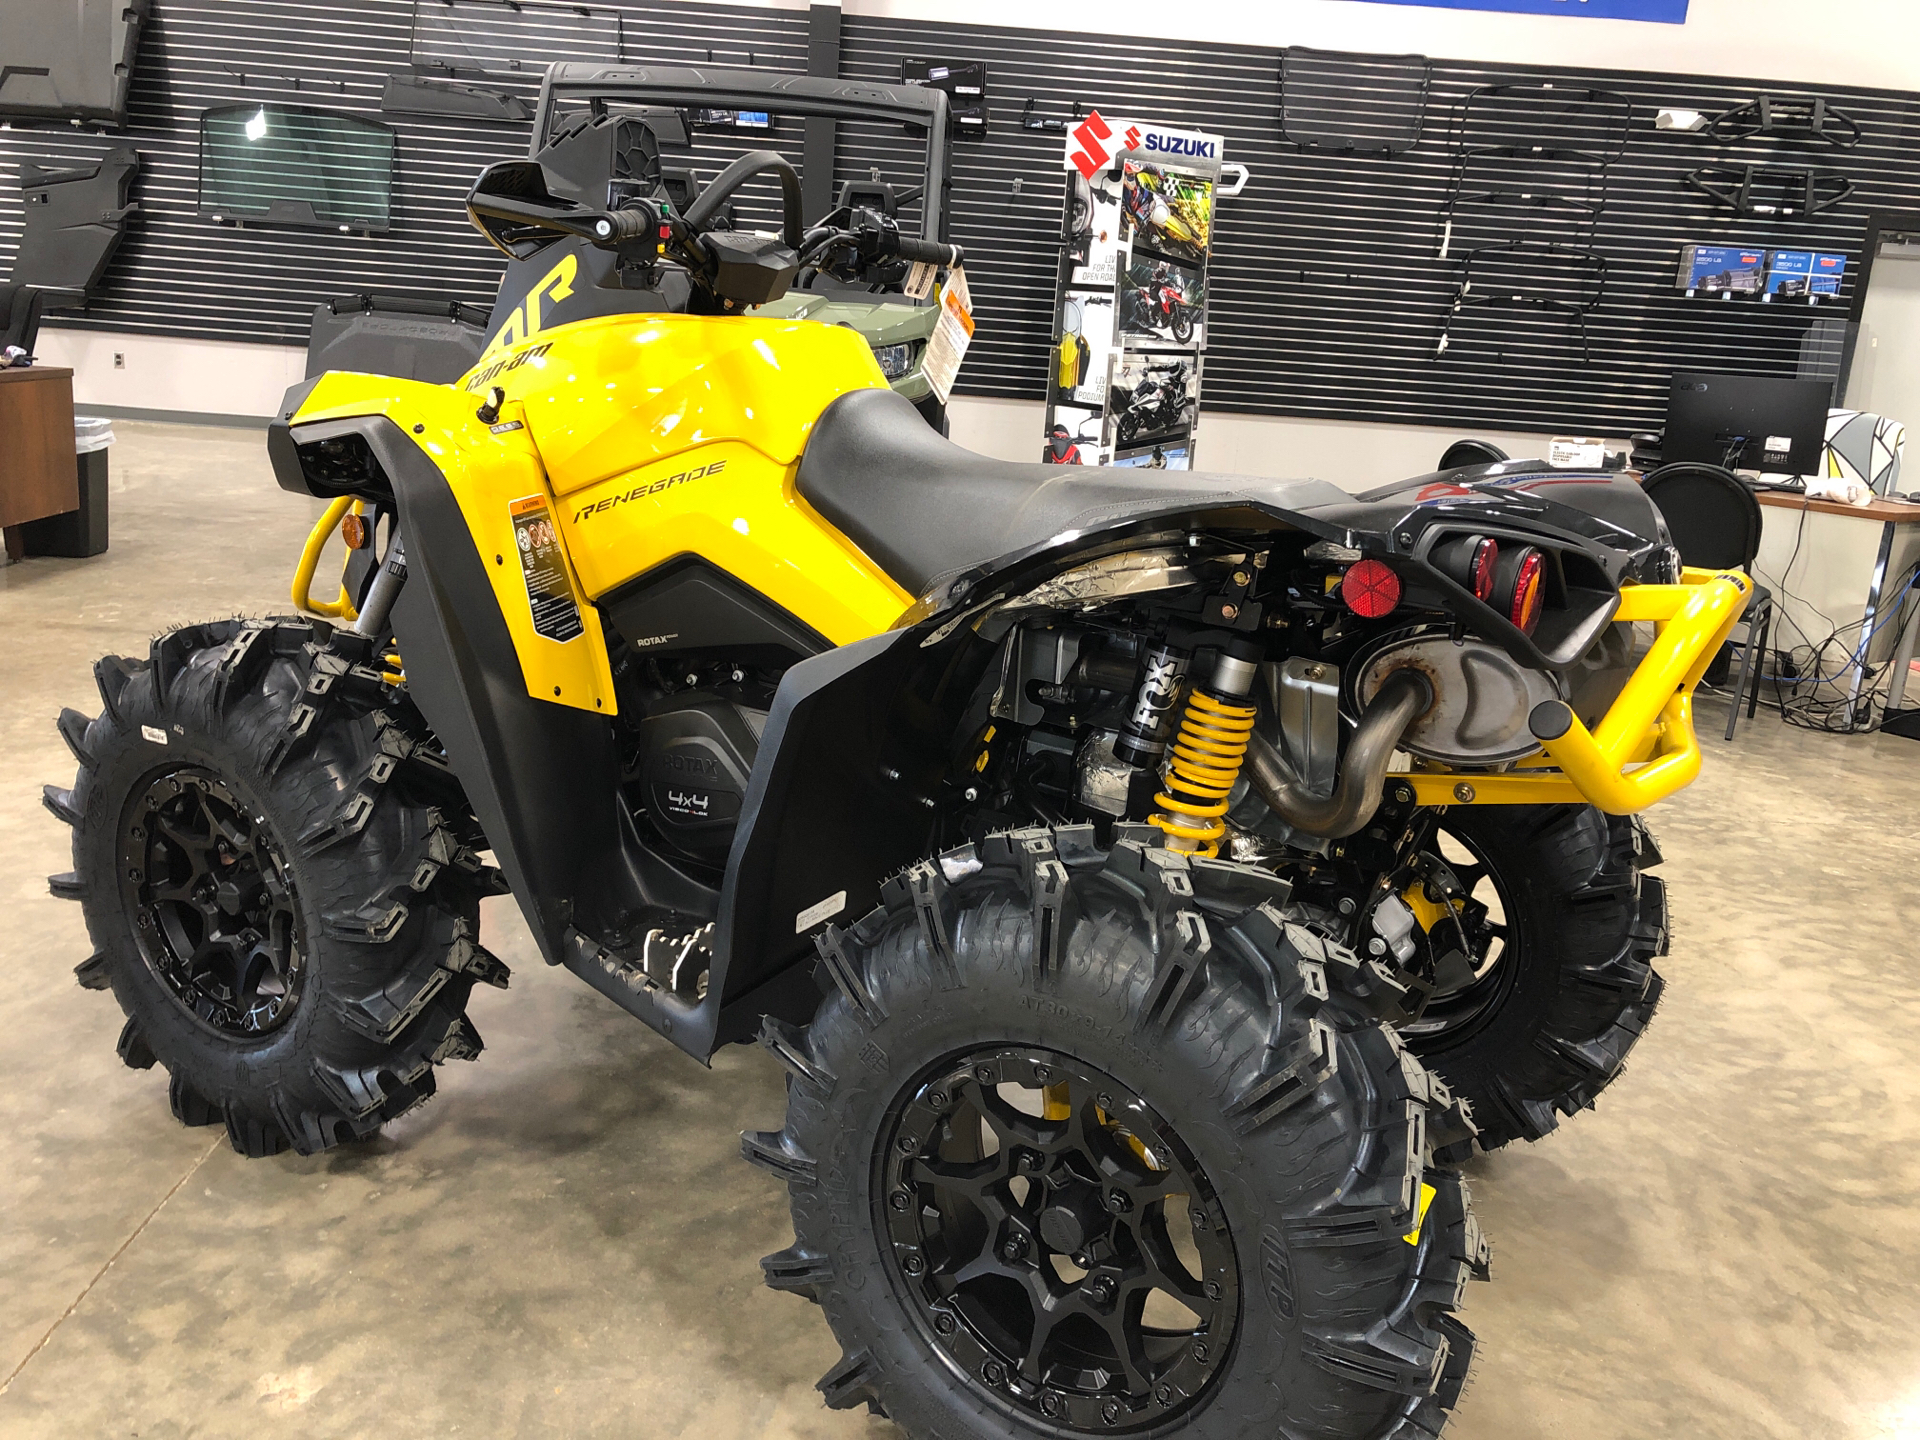 2021 Can-Am Renegade X MR 1000R with Visco-4Lok in Leland, Mississippi - Photo 3